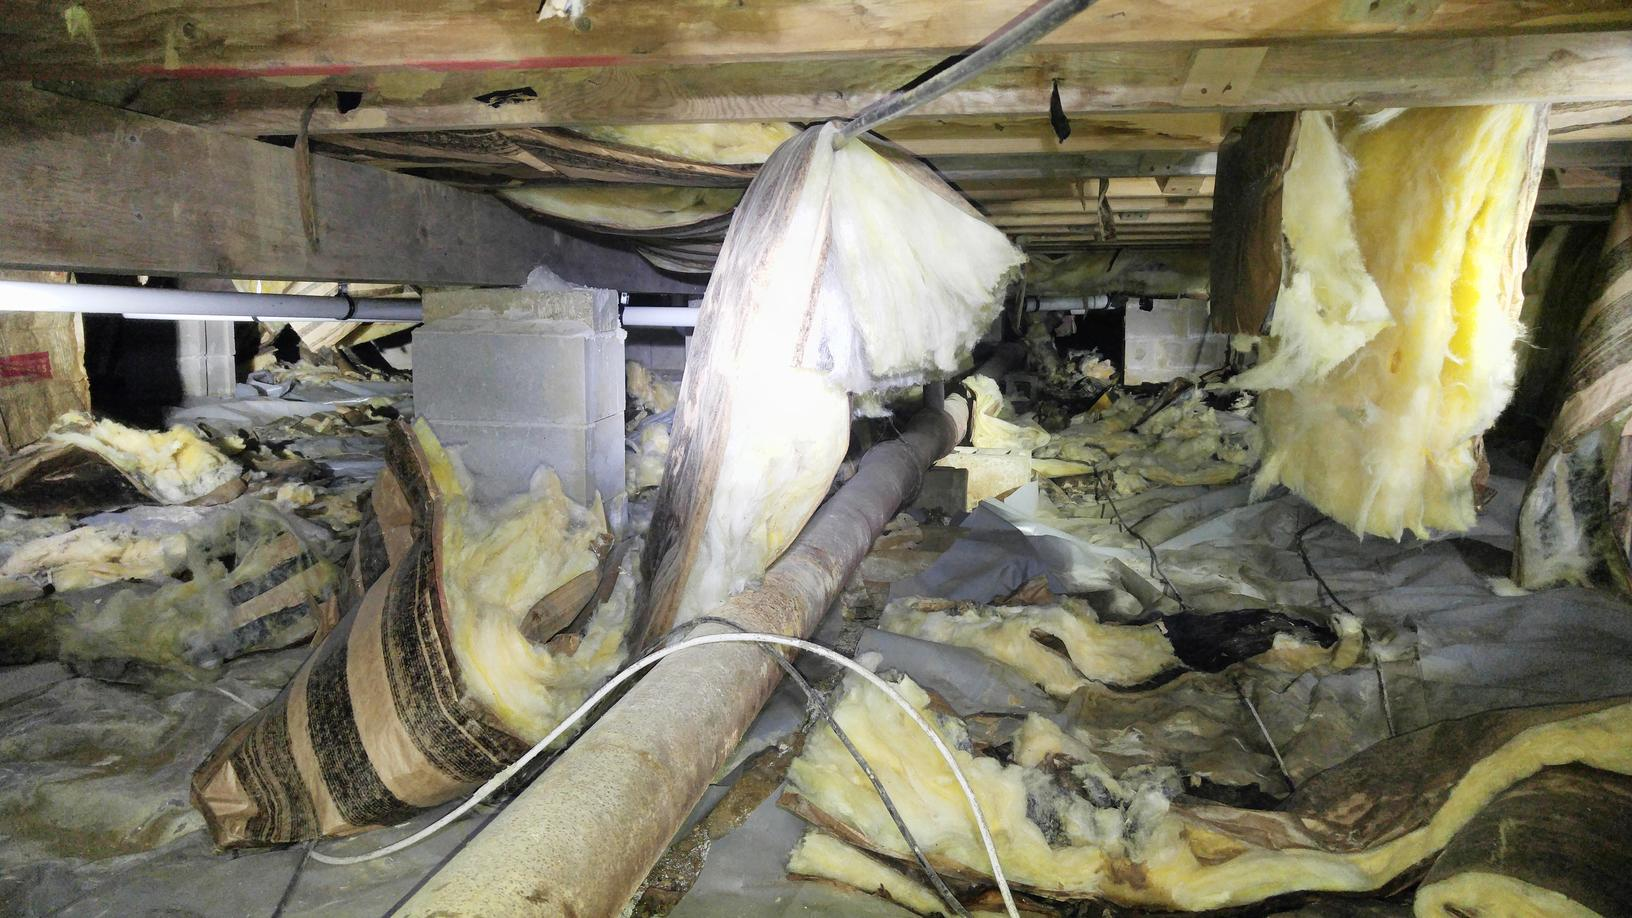 Mold in Crawl Space Require Major Clean-out and Treatment in Freehold, NJ - Before Photo